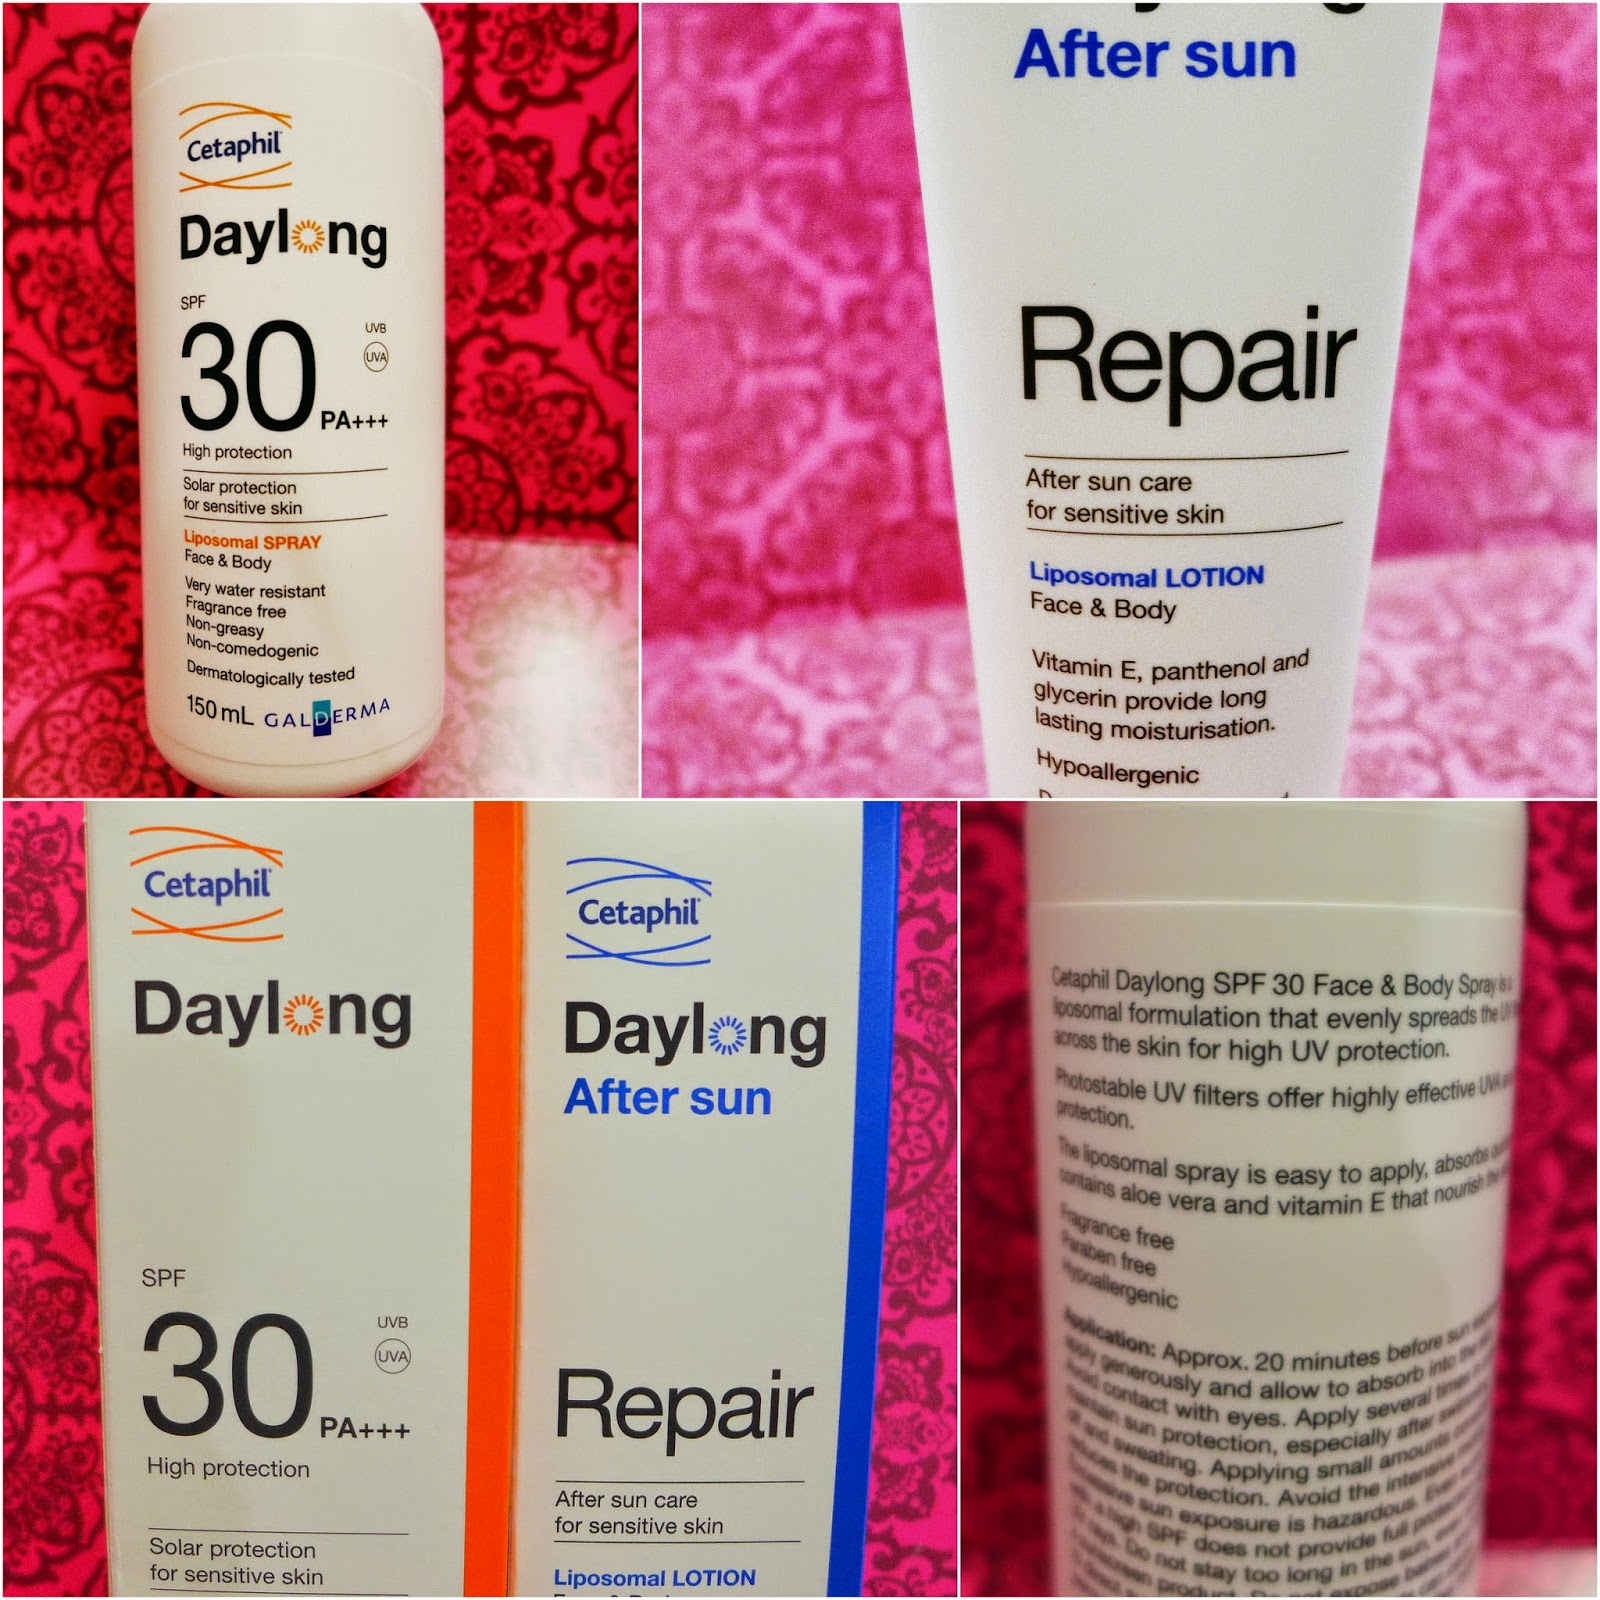 Practical Beauty Page 2 Ingrid Nieto Parasol Sunscreen Lotion Spf 30 50gr Daily Deep Complete Sun Protection Is Here With Daylong